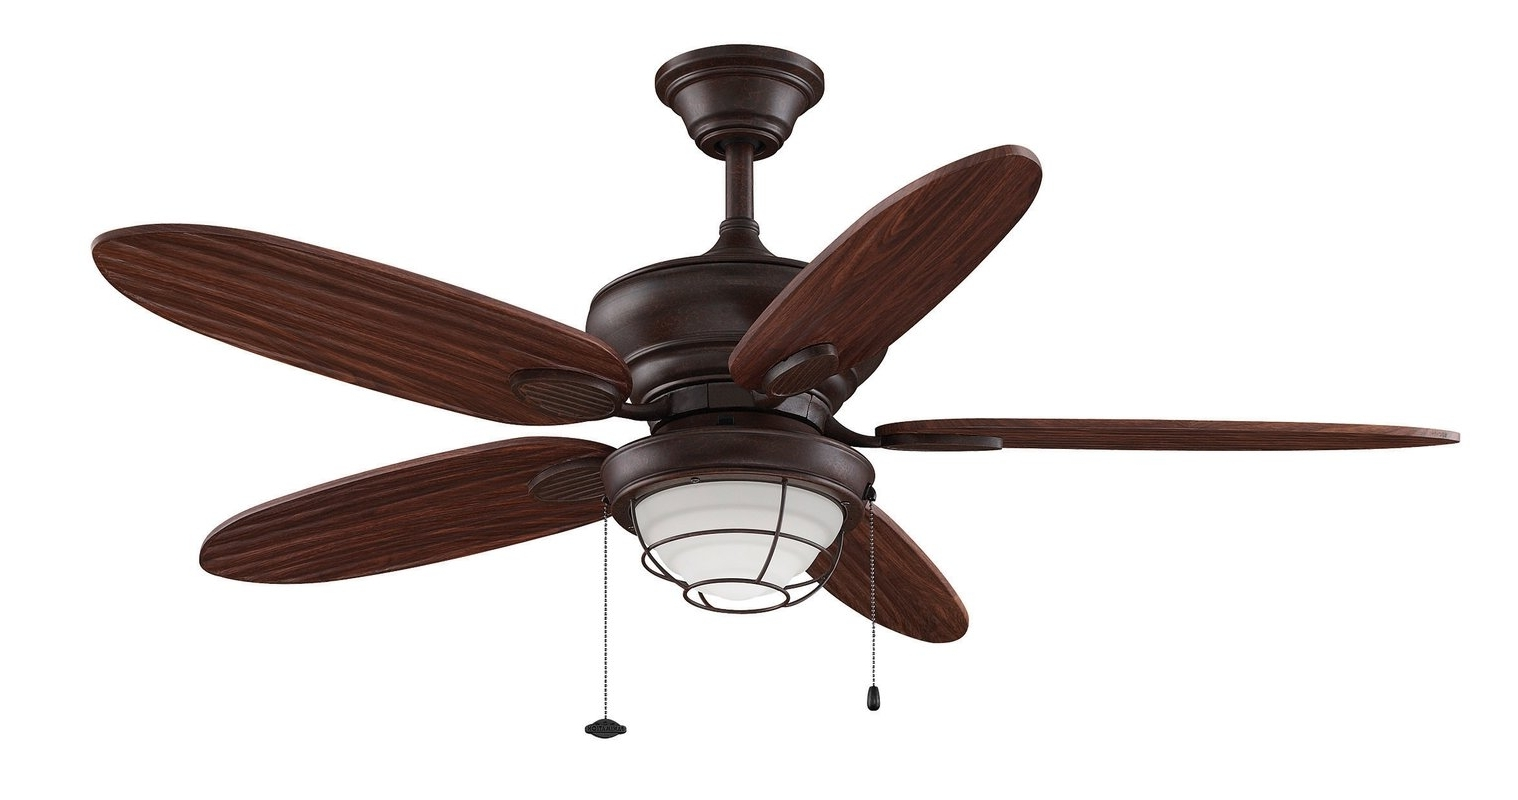 Wayfair Outdoor Ceiling Fans With Lights Within Famous Outdoor Ceiling Fans C Wayfair Ceiling Fans With Lights Simple (View 7 of 20)